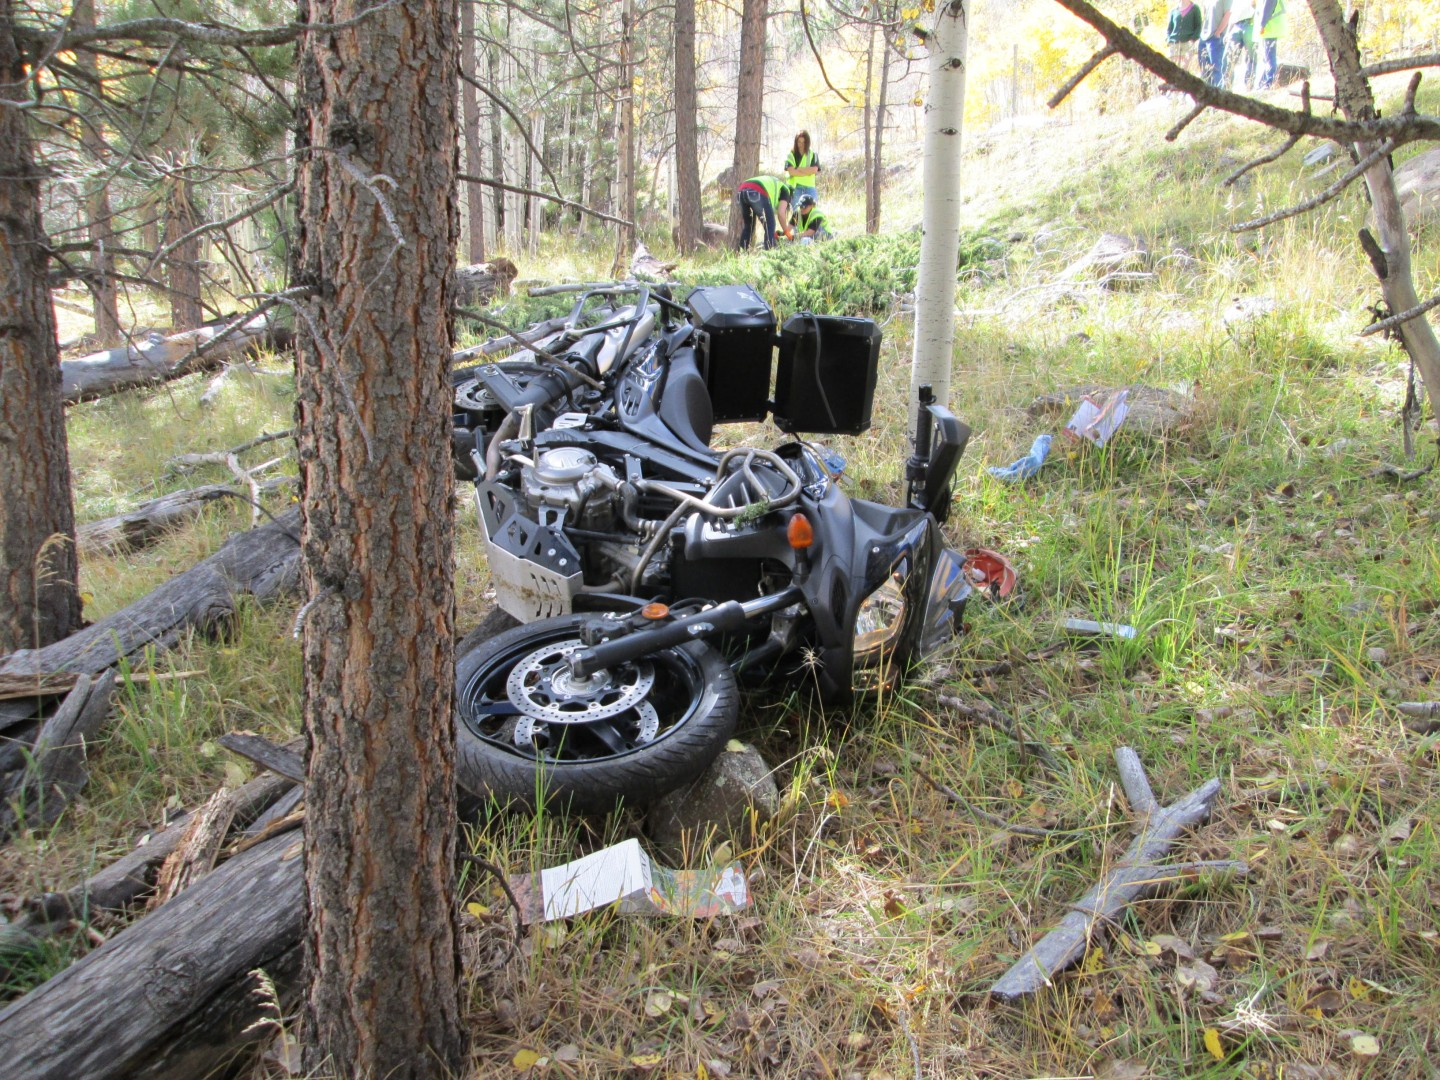 Motorcycle crashes into felled tree on state Route 12 about halfway between Boulder in Garfield County and Torrey in Wayne County, Utah, Oct. 11, 2014 | Photo courtesy of Utah Highway Patrol, St. George News